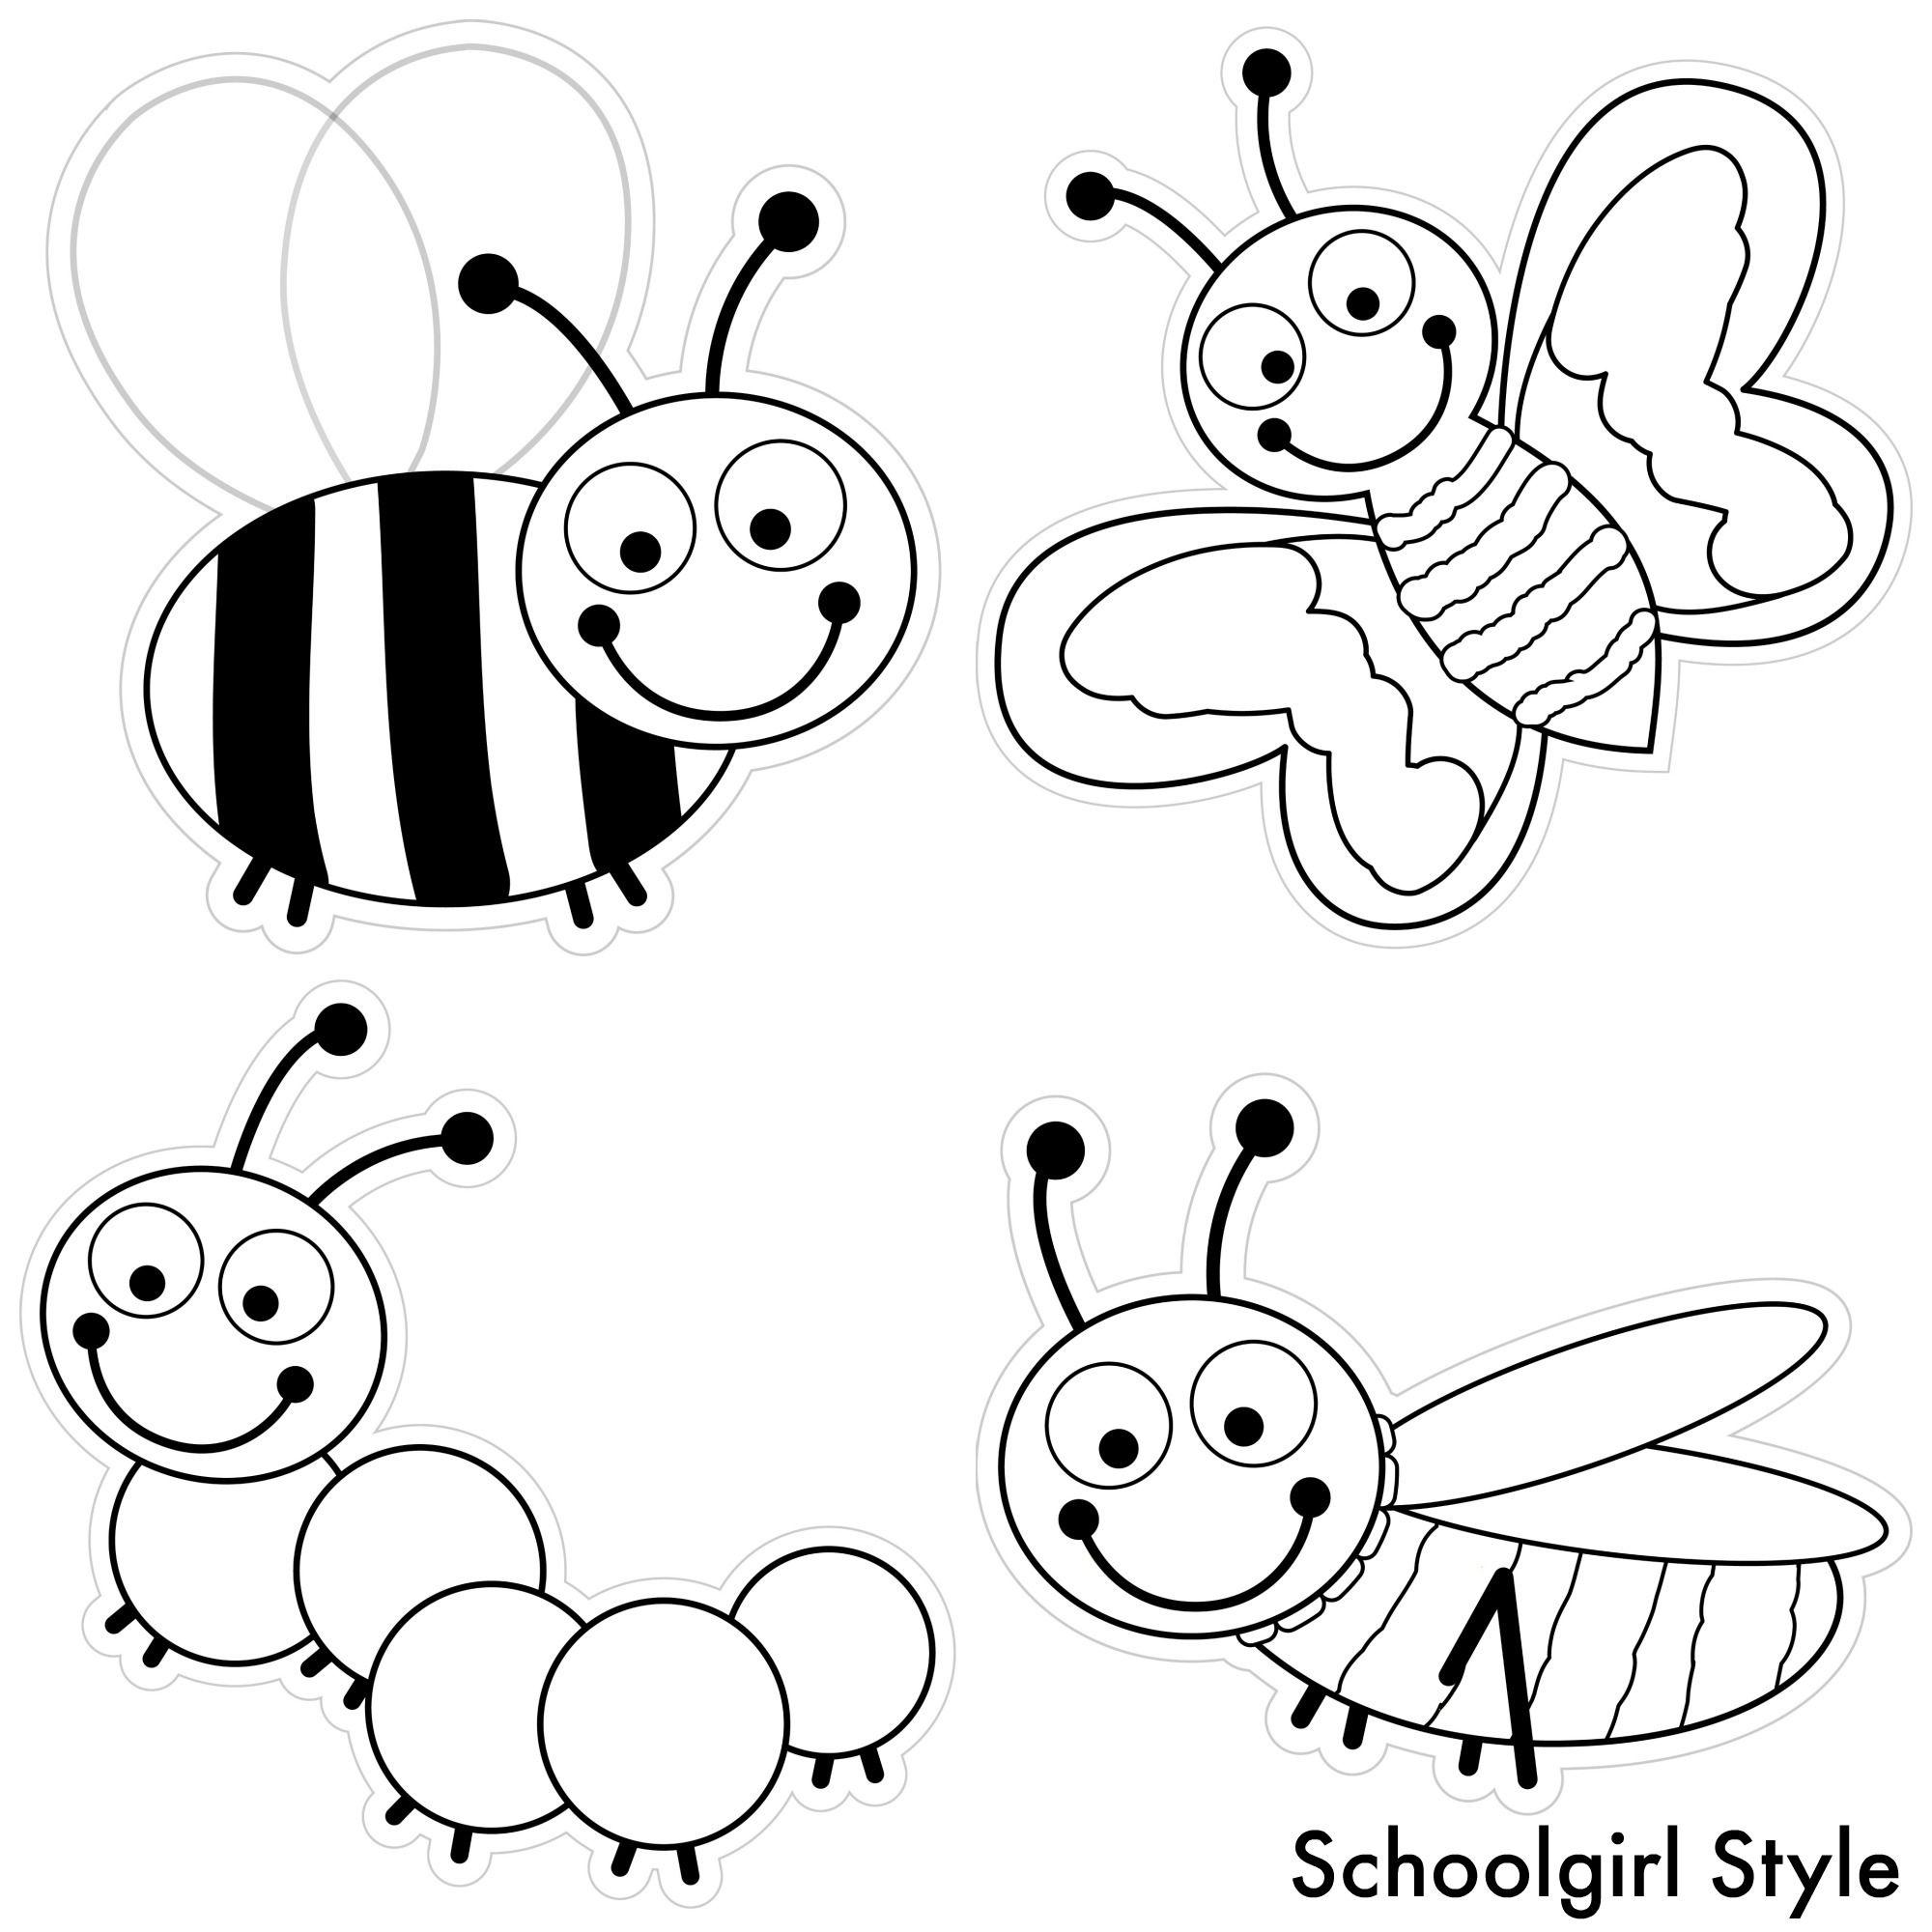 Color My Classroom Bugs By Schoolgirl Style Bug Insects Bee Grasshopper Ant Ladybug Butterfly Caterpillar Dragonfly ThemesPreschool